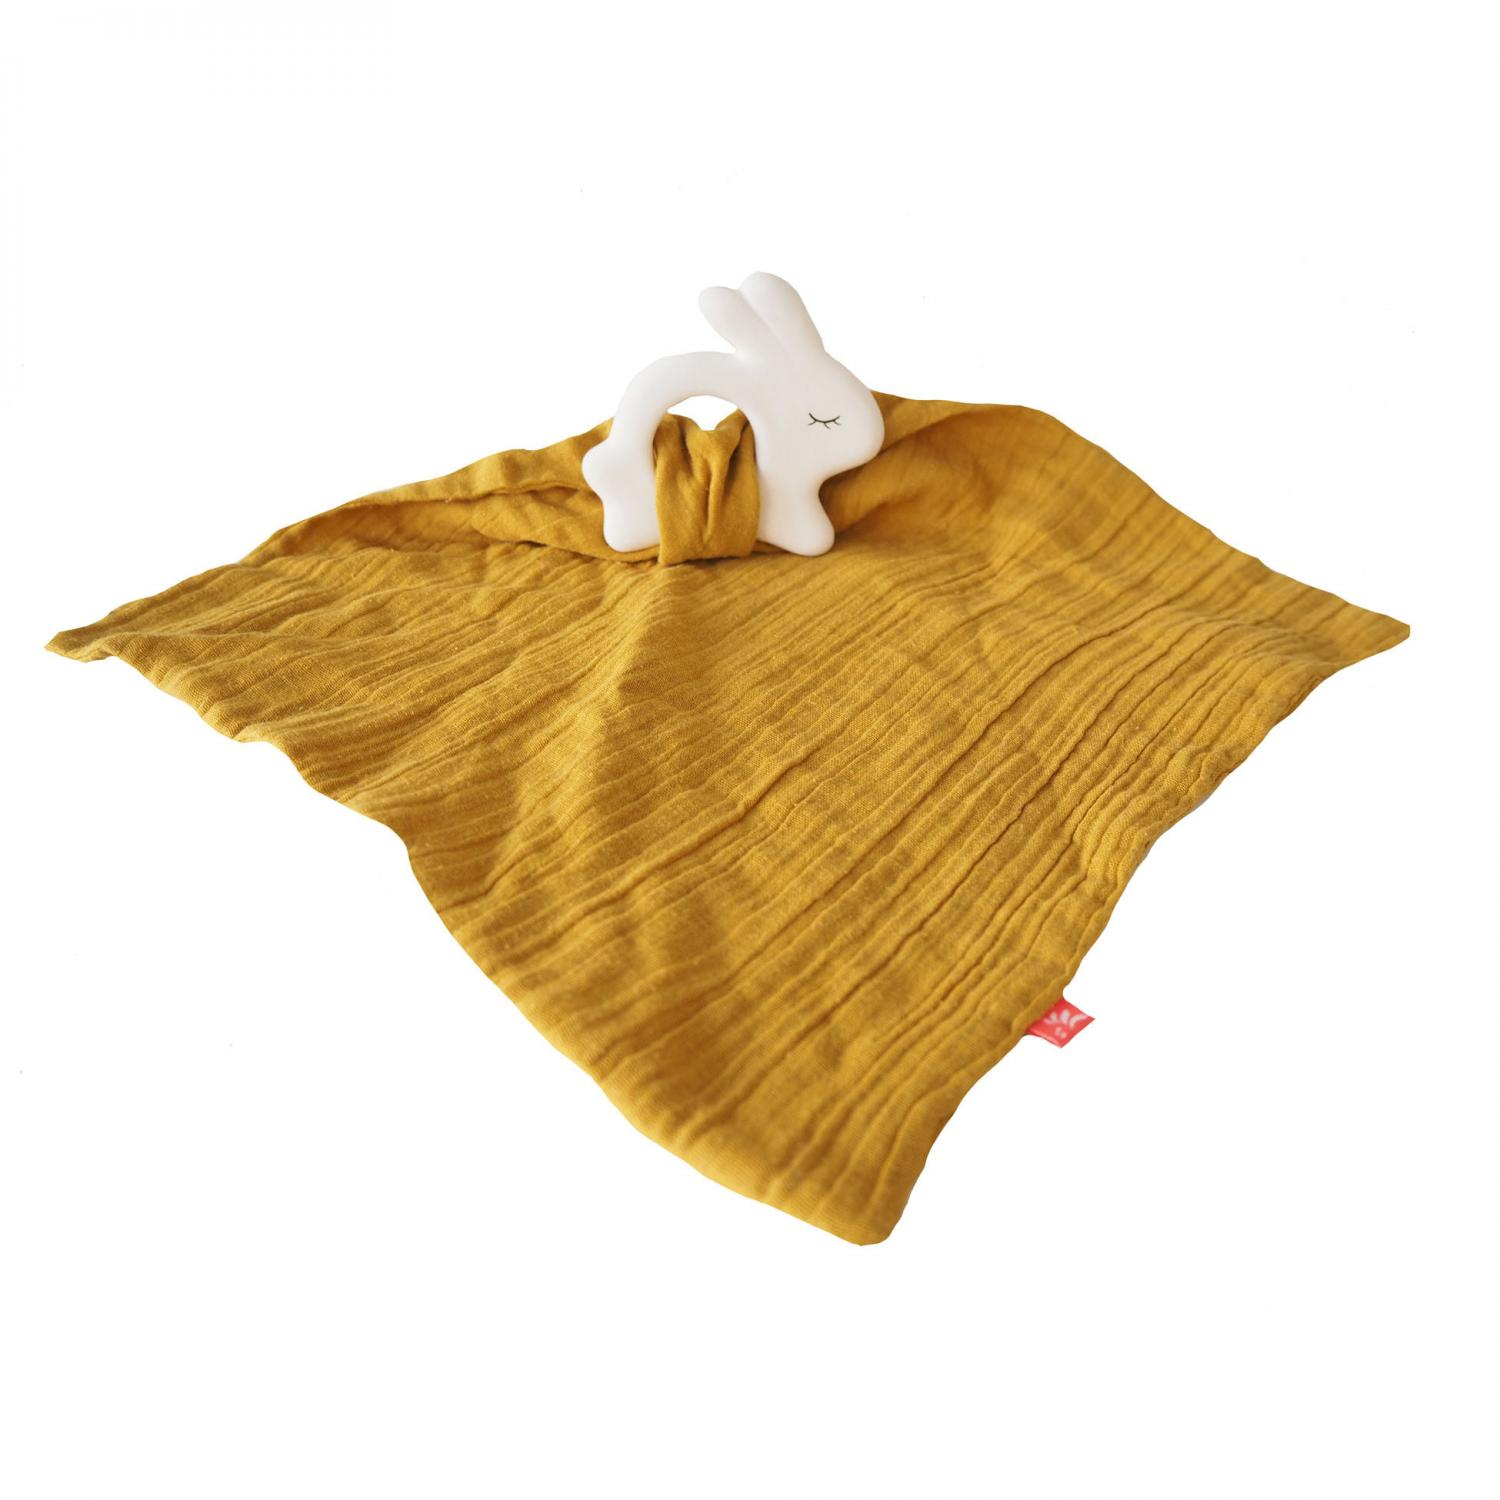 Rubber Rabbit with Towel Mustard